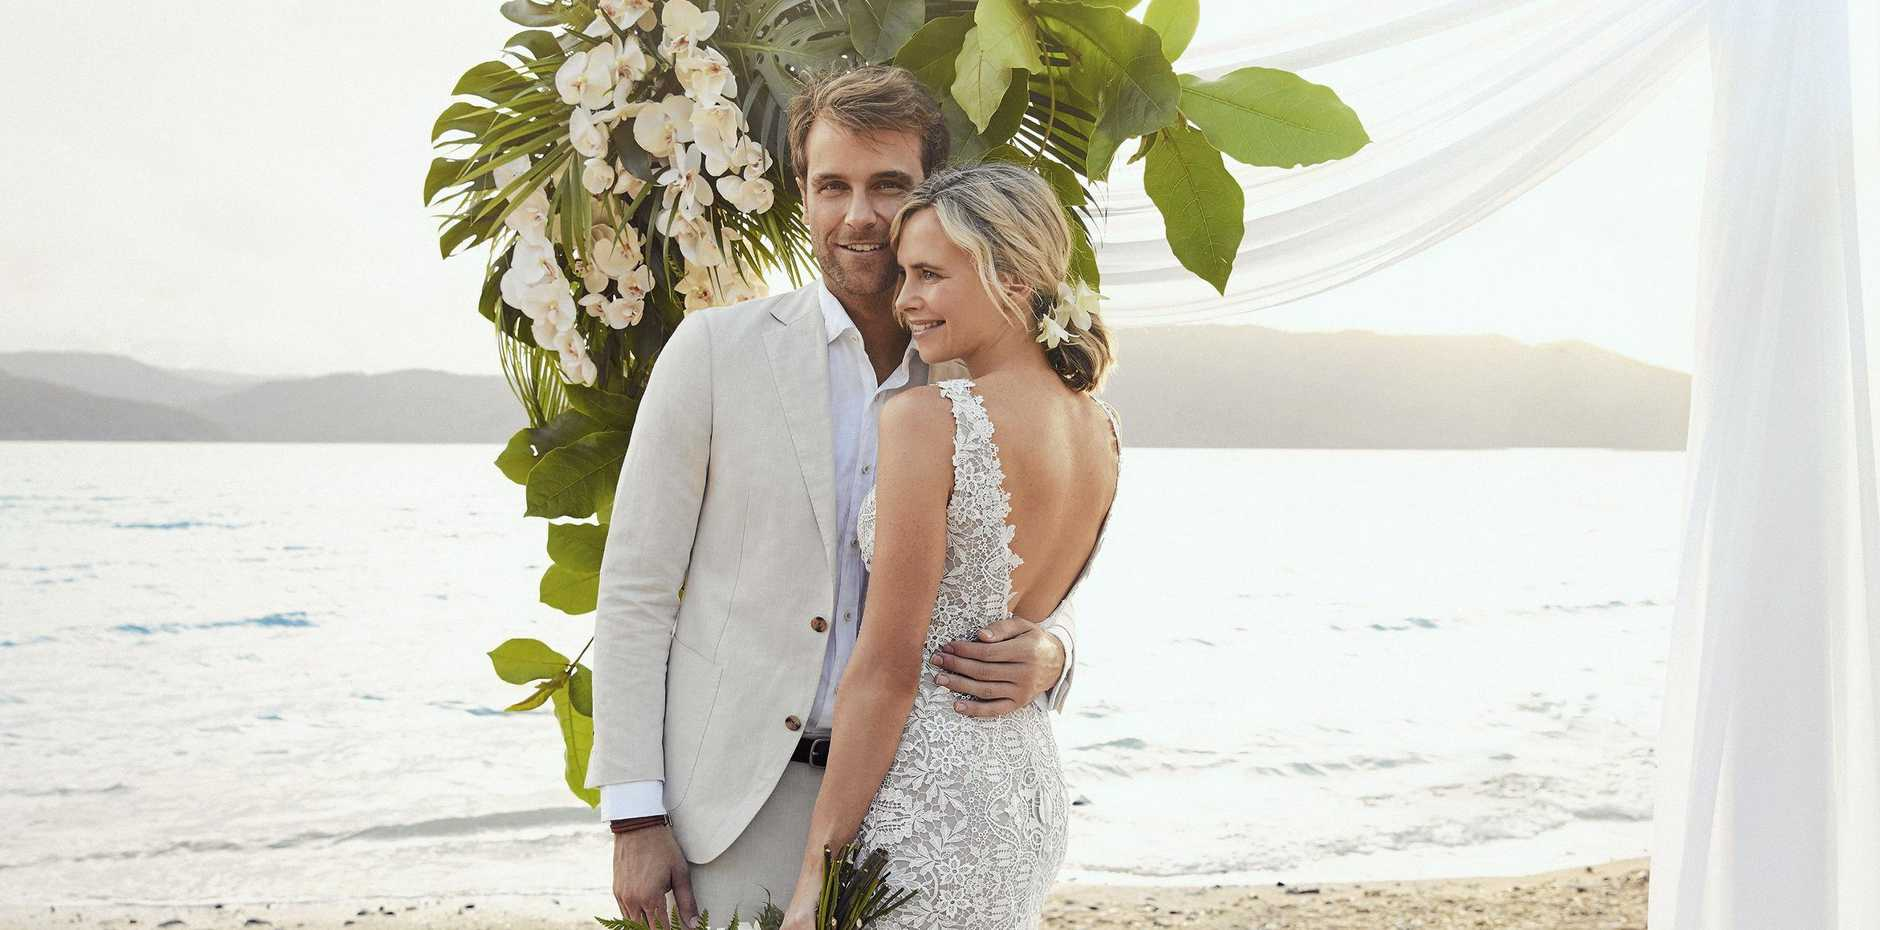 Daydream Island will be holding a Wedding Open Day in July.